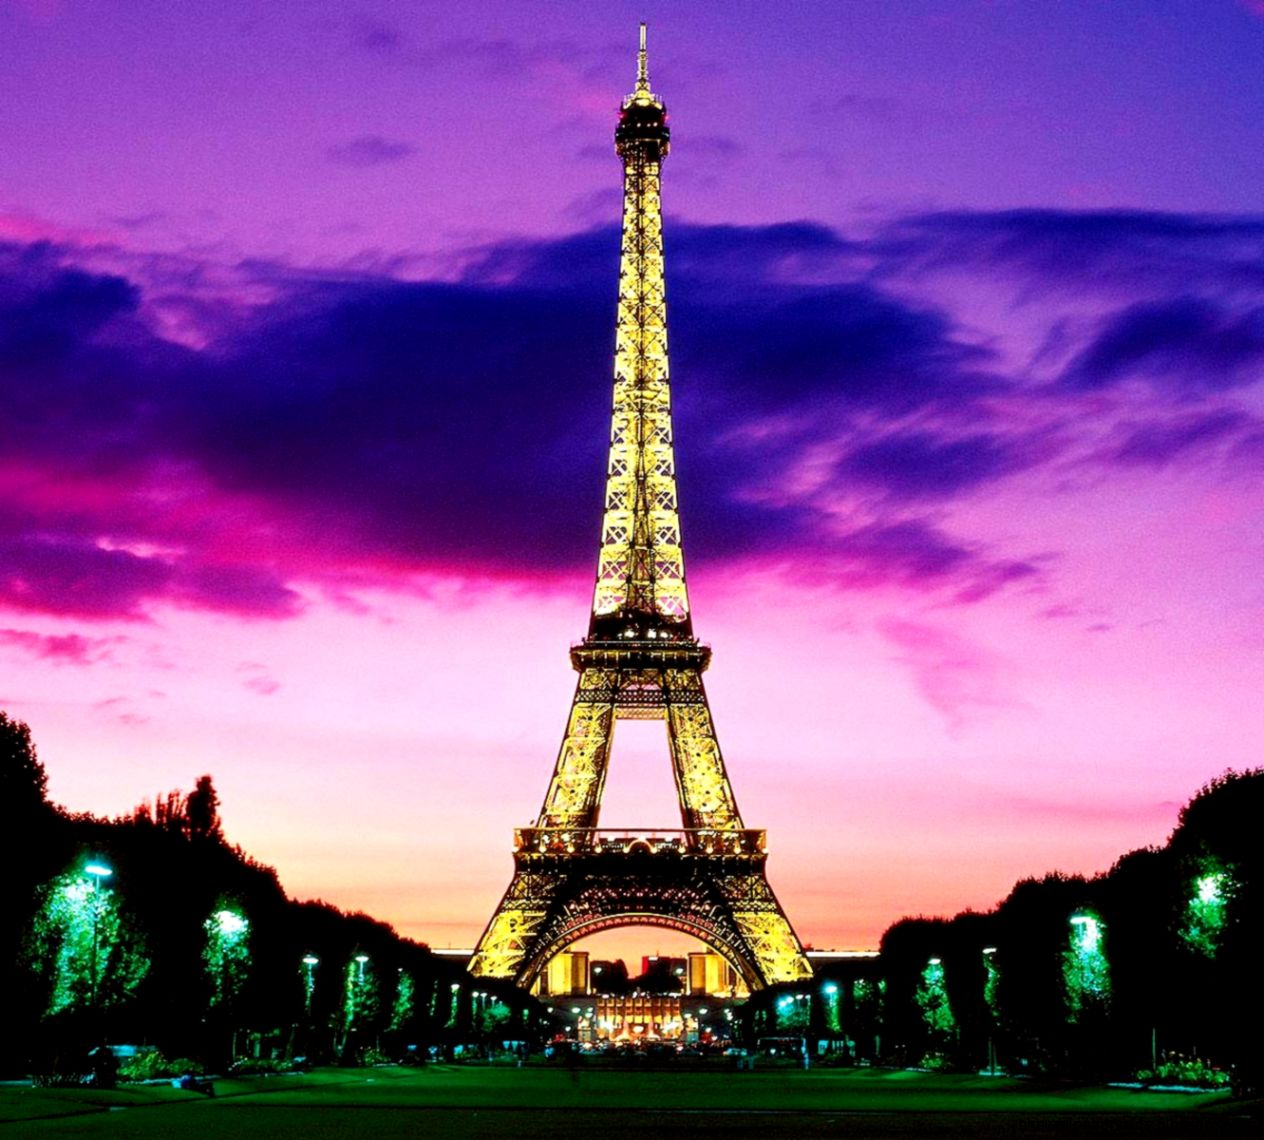 Eiffel Tower Wallpapers Hd 1024x768PX  Eiffel Tower Night Iphone